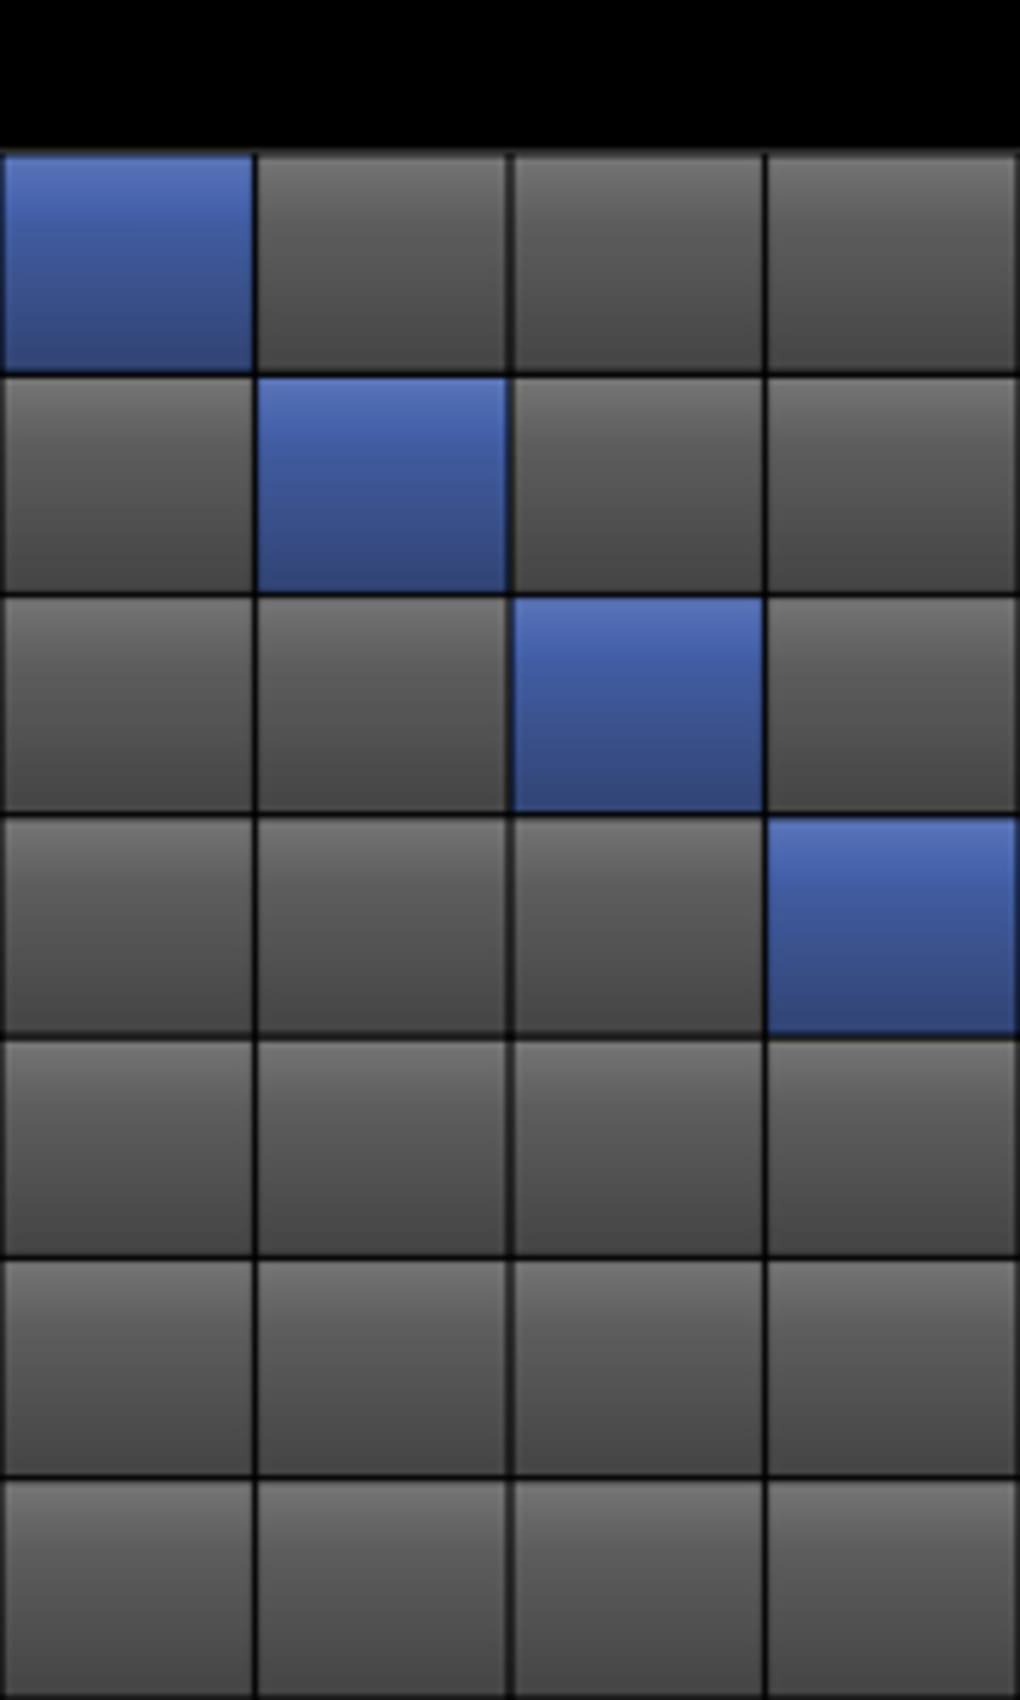 Custom Soundboard for Android - Download